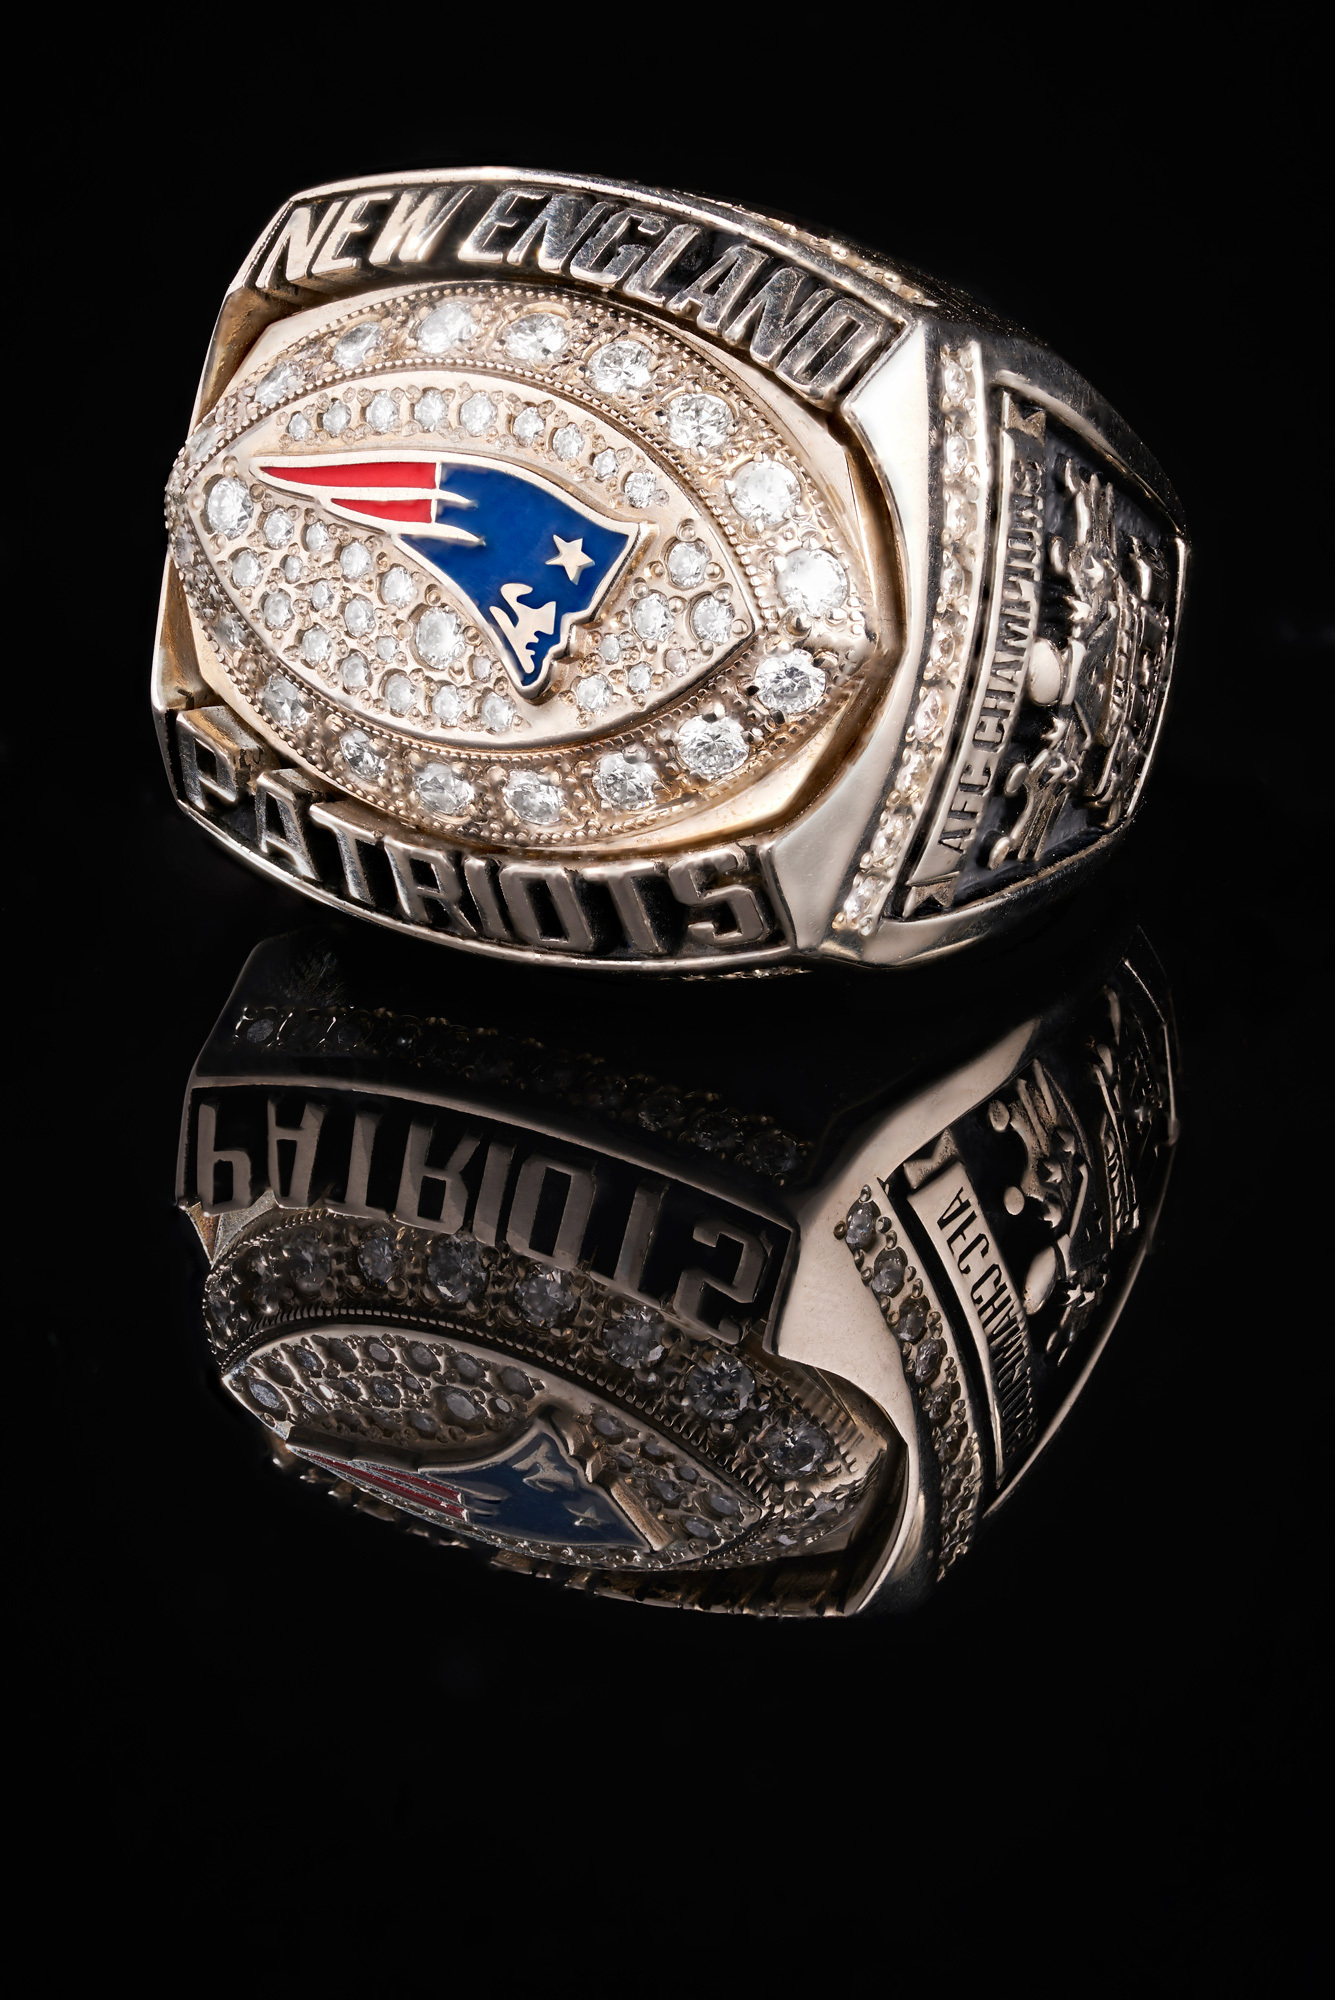 Product-Photograph-of-Super-Bowl-Rings-by-Architectural,-Interior,-and-Product-Photographer-Nick-McGinn-4.web.jpg